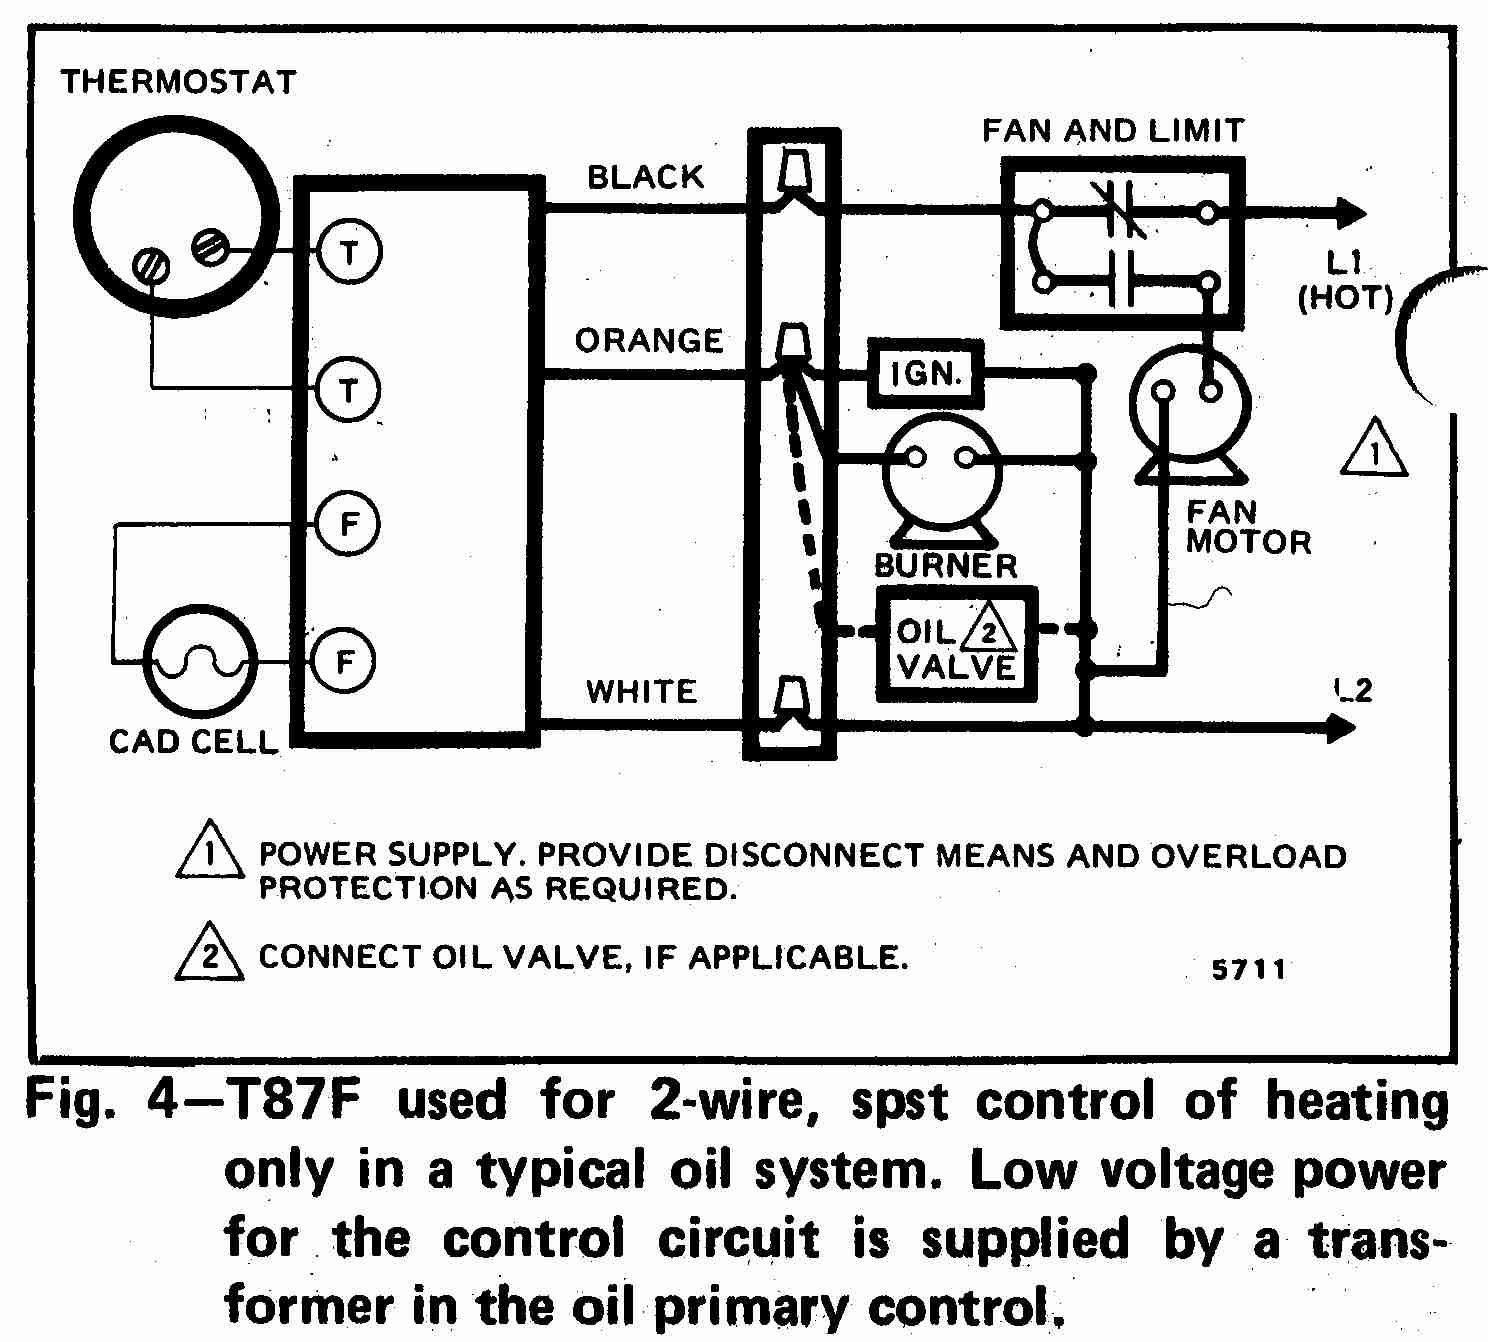 Wiring Diagram Central Heating Programmer Con Imagenes Panel